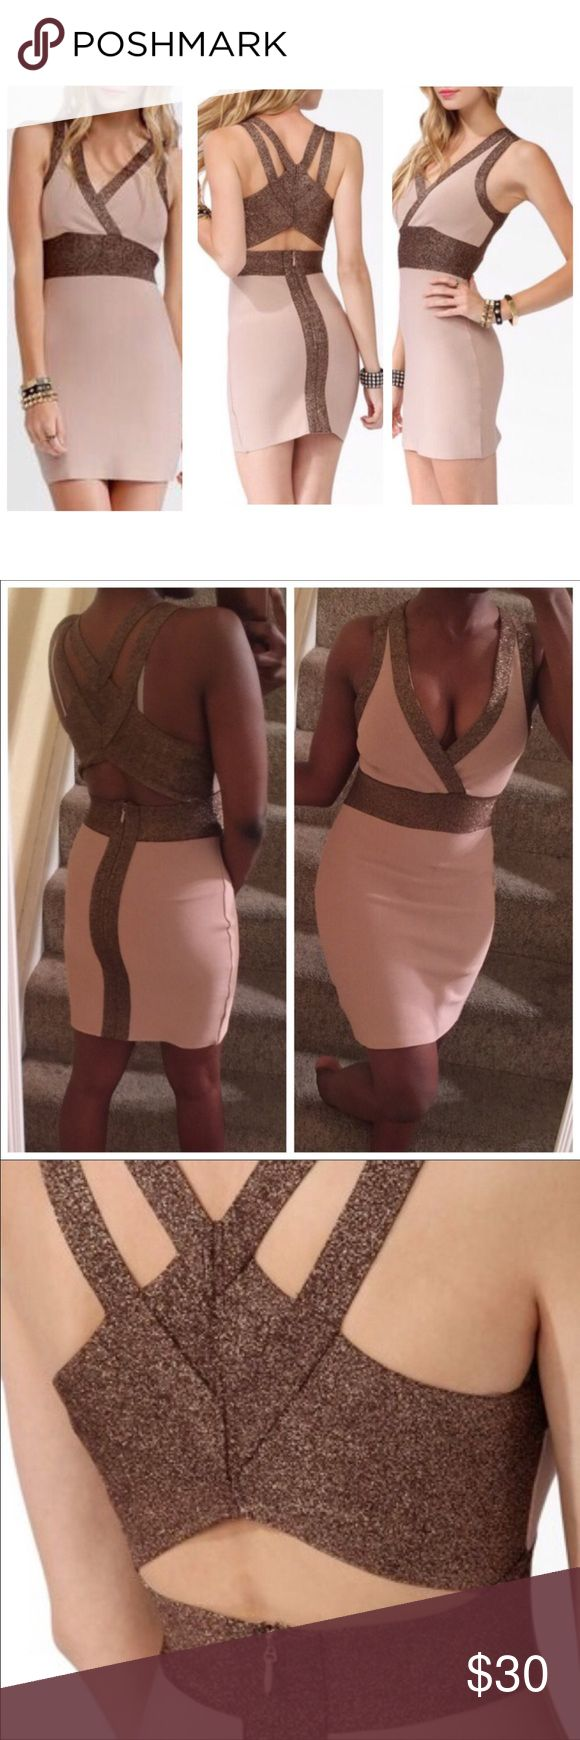 🔥 Metallic Bronze Bandage Dress Stretchy bodycon dress with glitter metallic trim. Very strappy with an open back. Worn twice. Looks very good at night because of the sparkles. Definitely a headturner. Purchased from Forever 21. Beige/Khaki colored.  If you love these brands: 🌸 herve leger 🌸 missguided 🌸 bebe 🌸 house of cb 🌸 french connection 🌸 fashion nova You will love this! Dresses